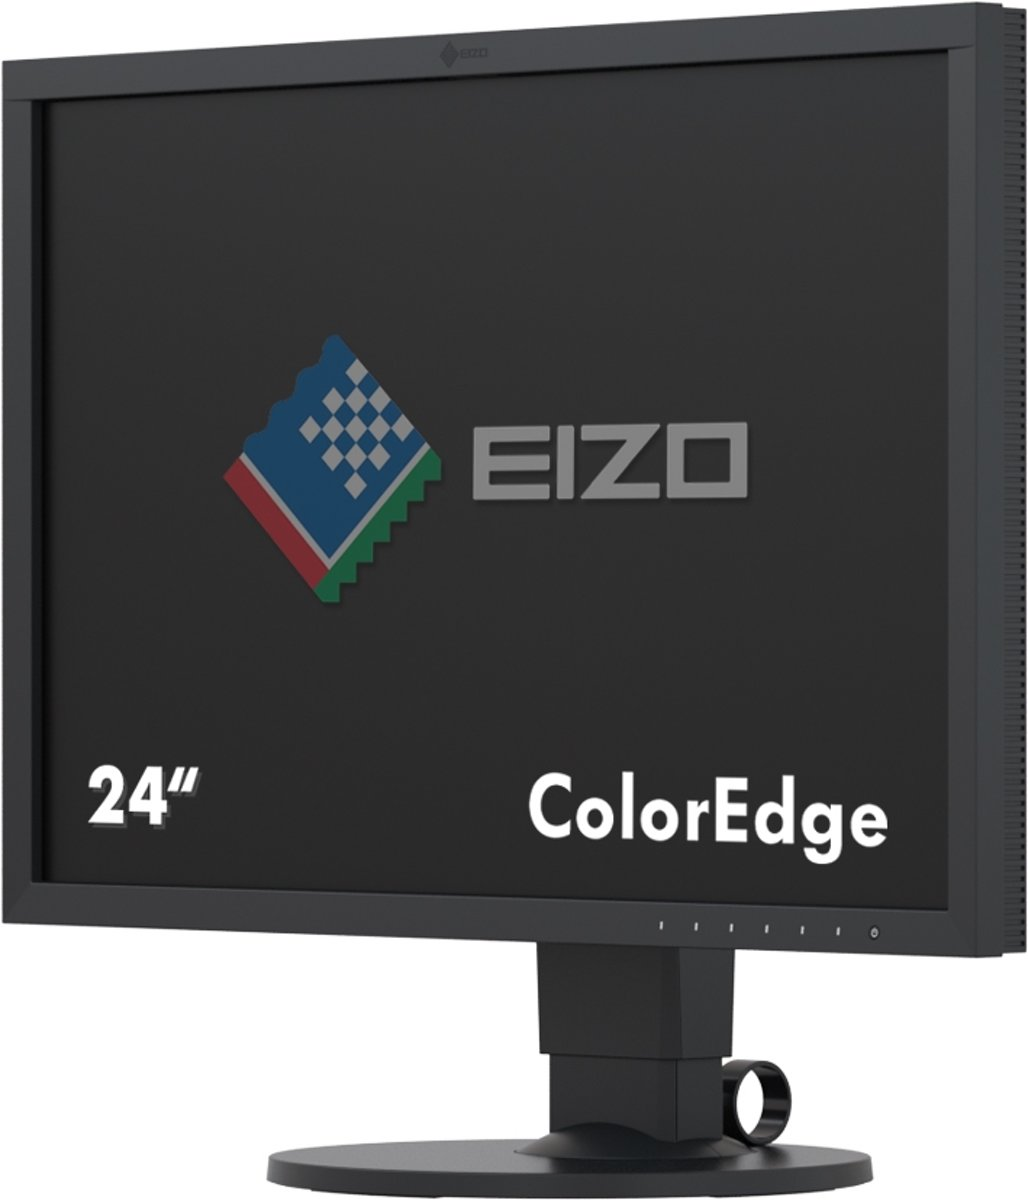 ColorEdge CS2420 - IPS